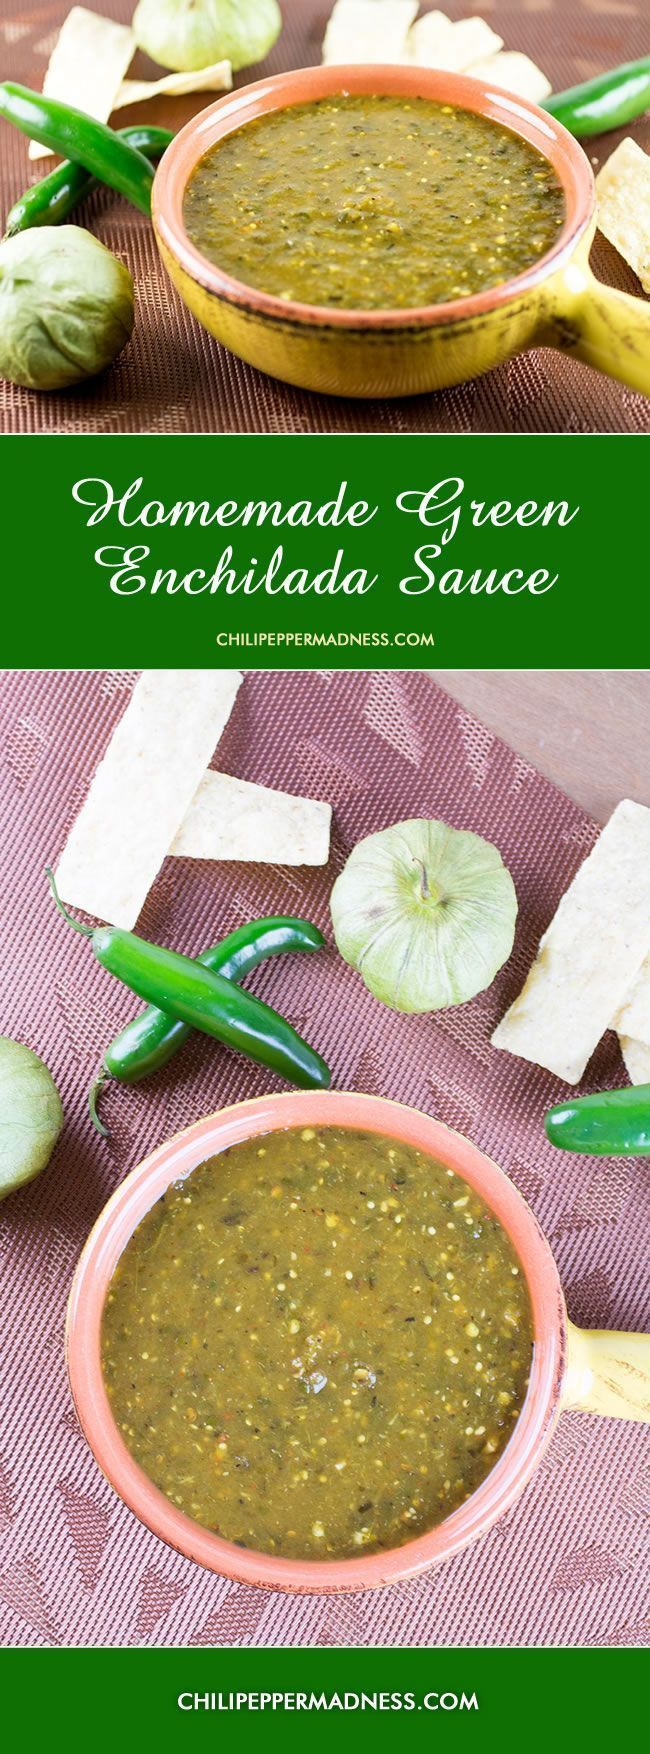 Homemade Green Enchilada Sauce with Roasted Tomatillos from Chili Pepper Madness